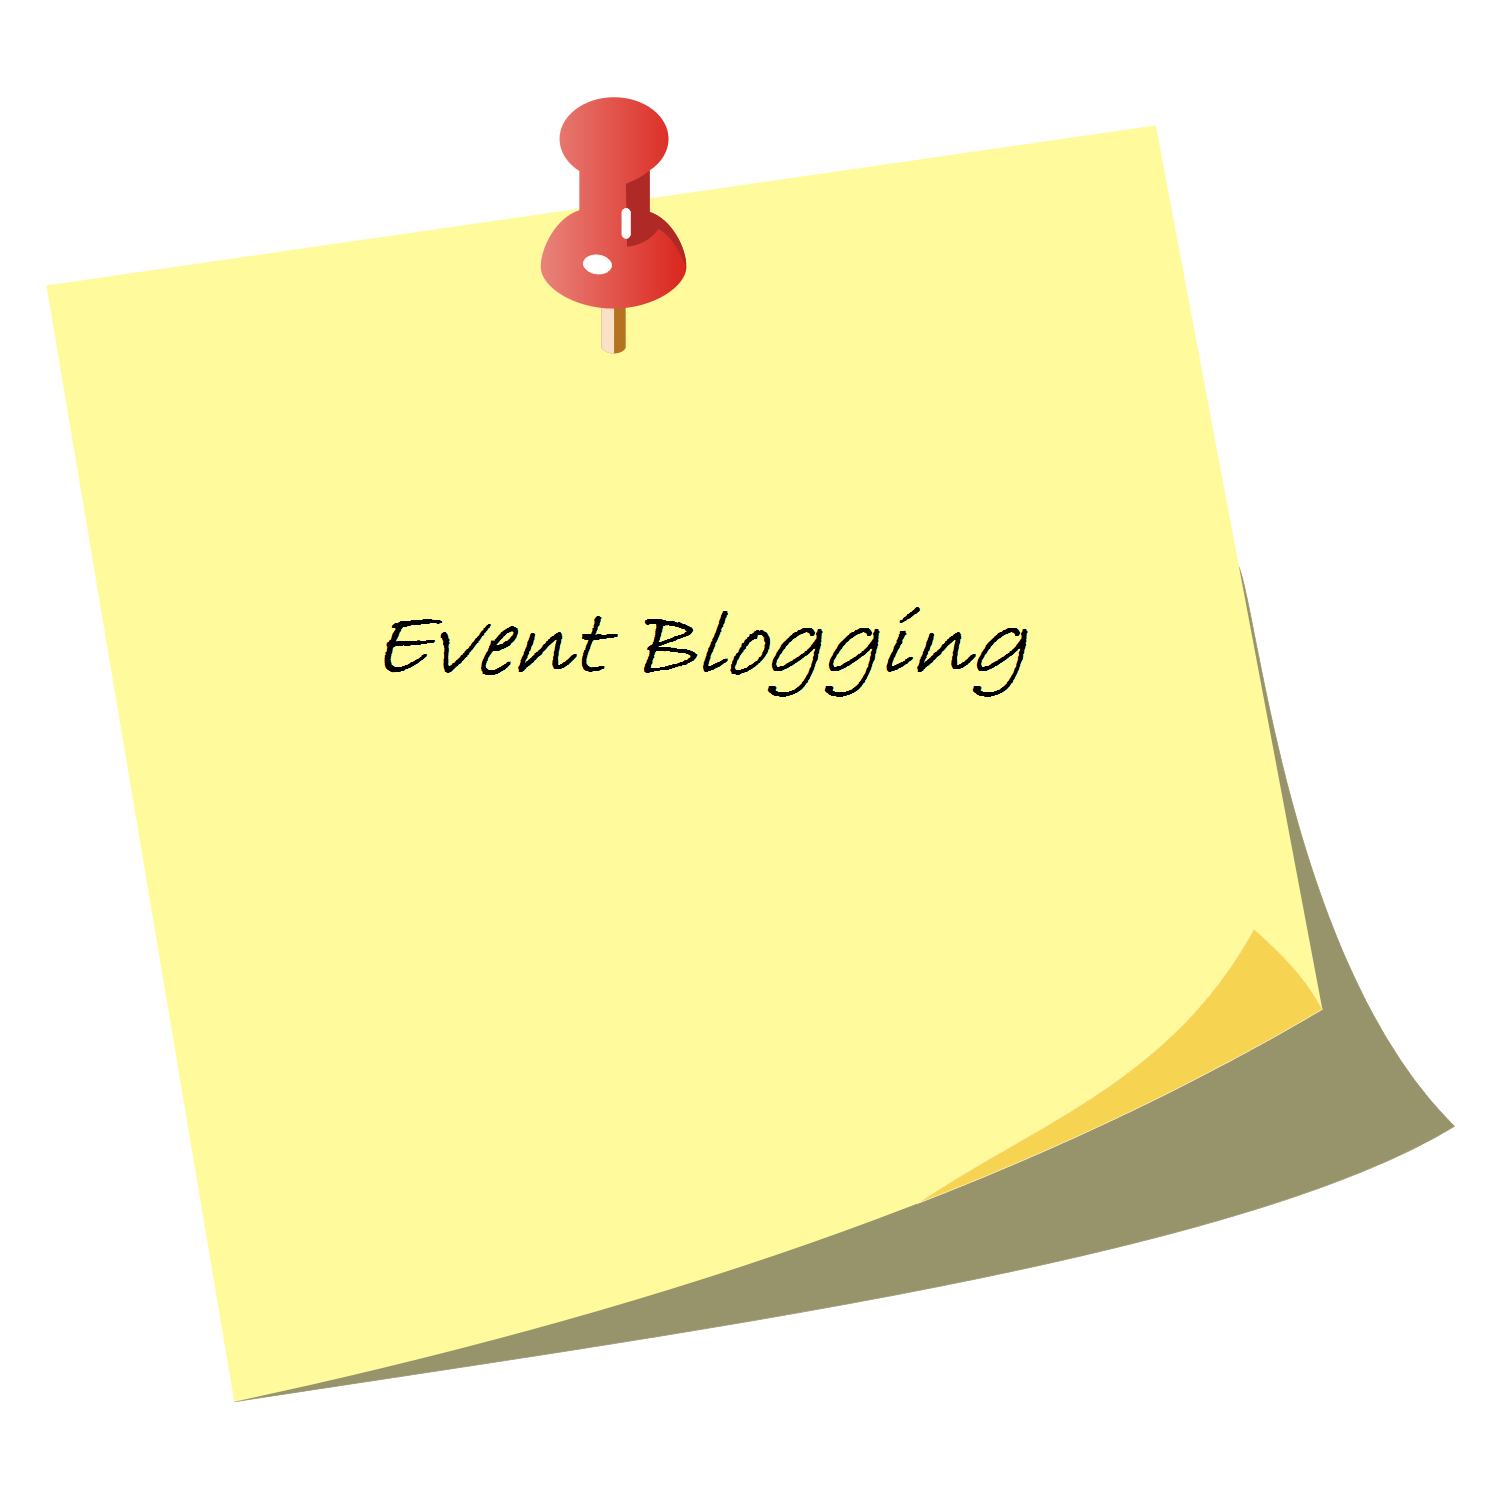 What is Event Blogging?